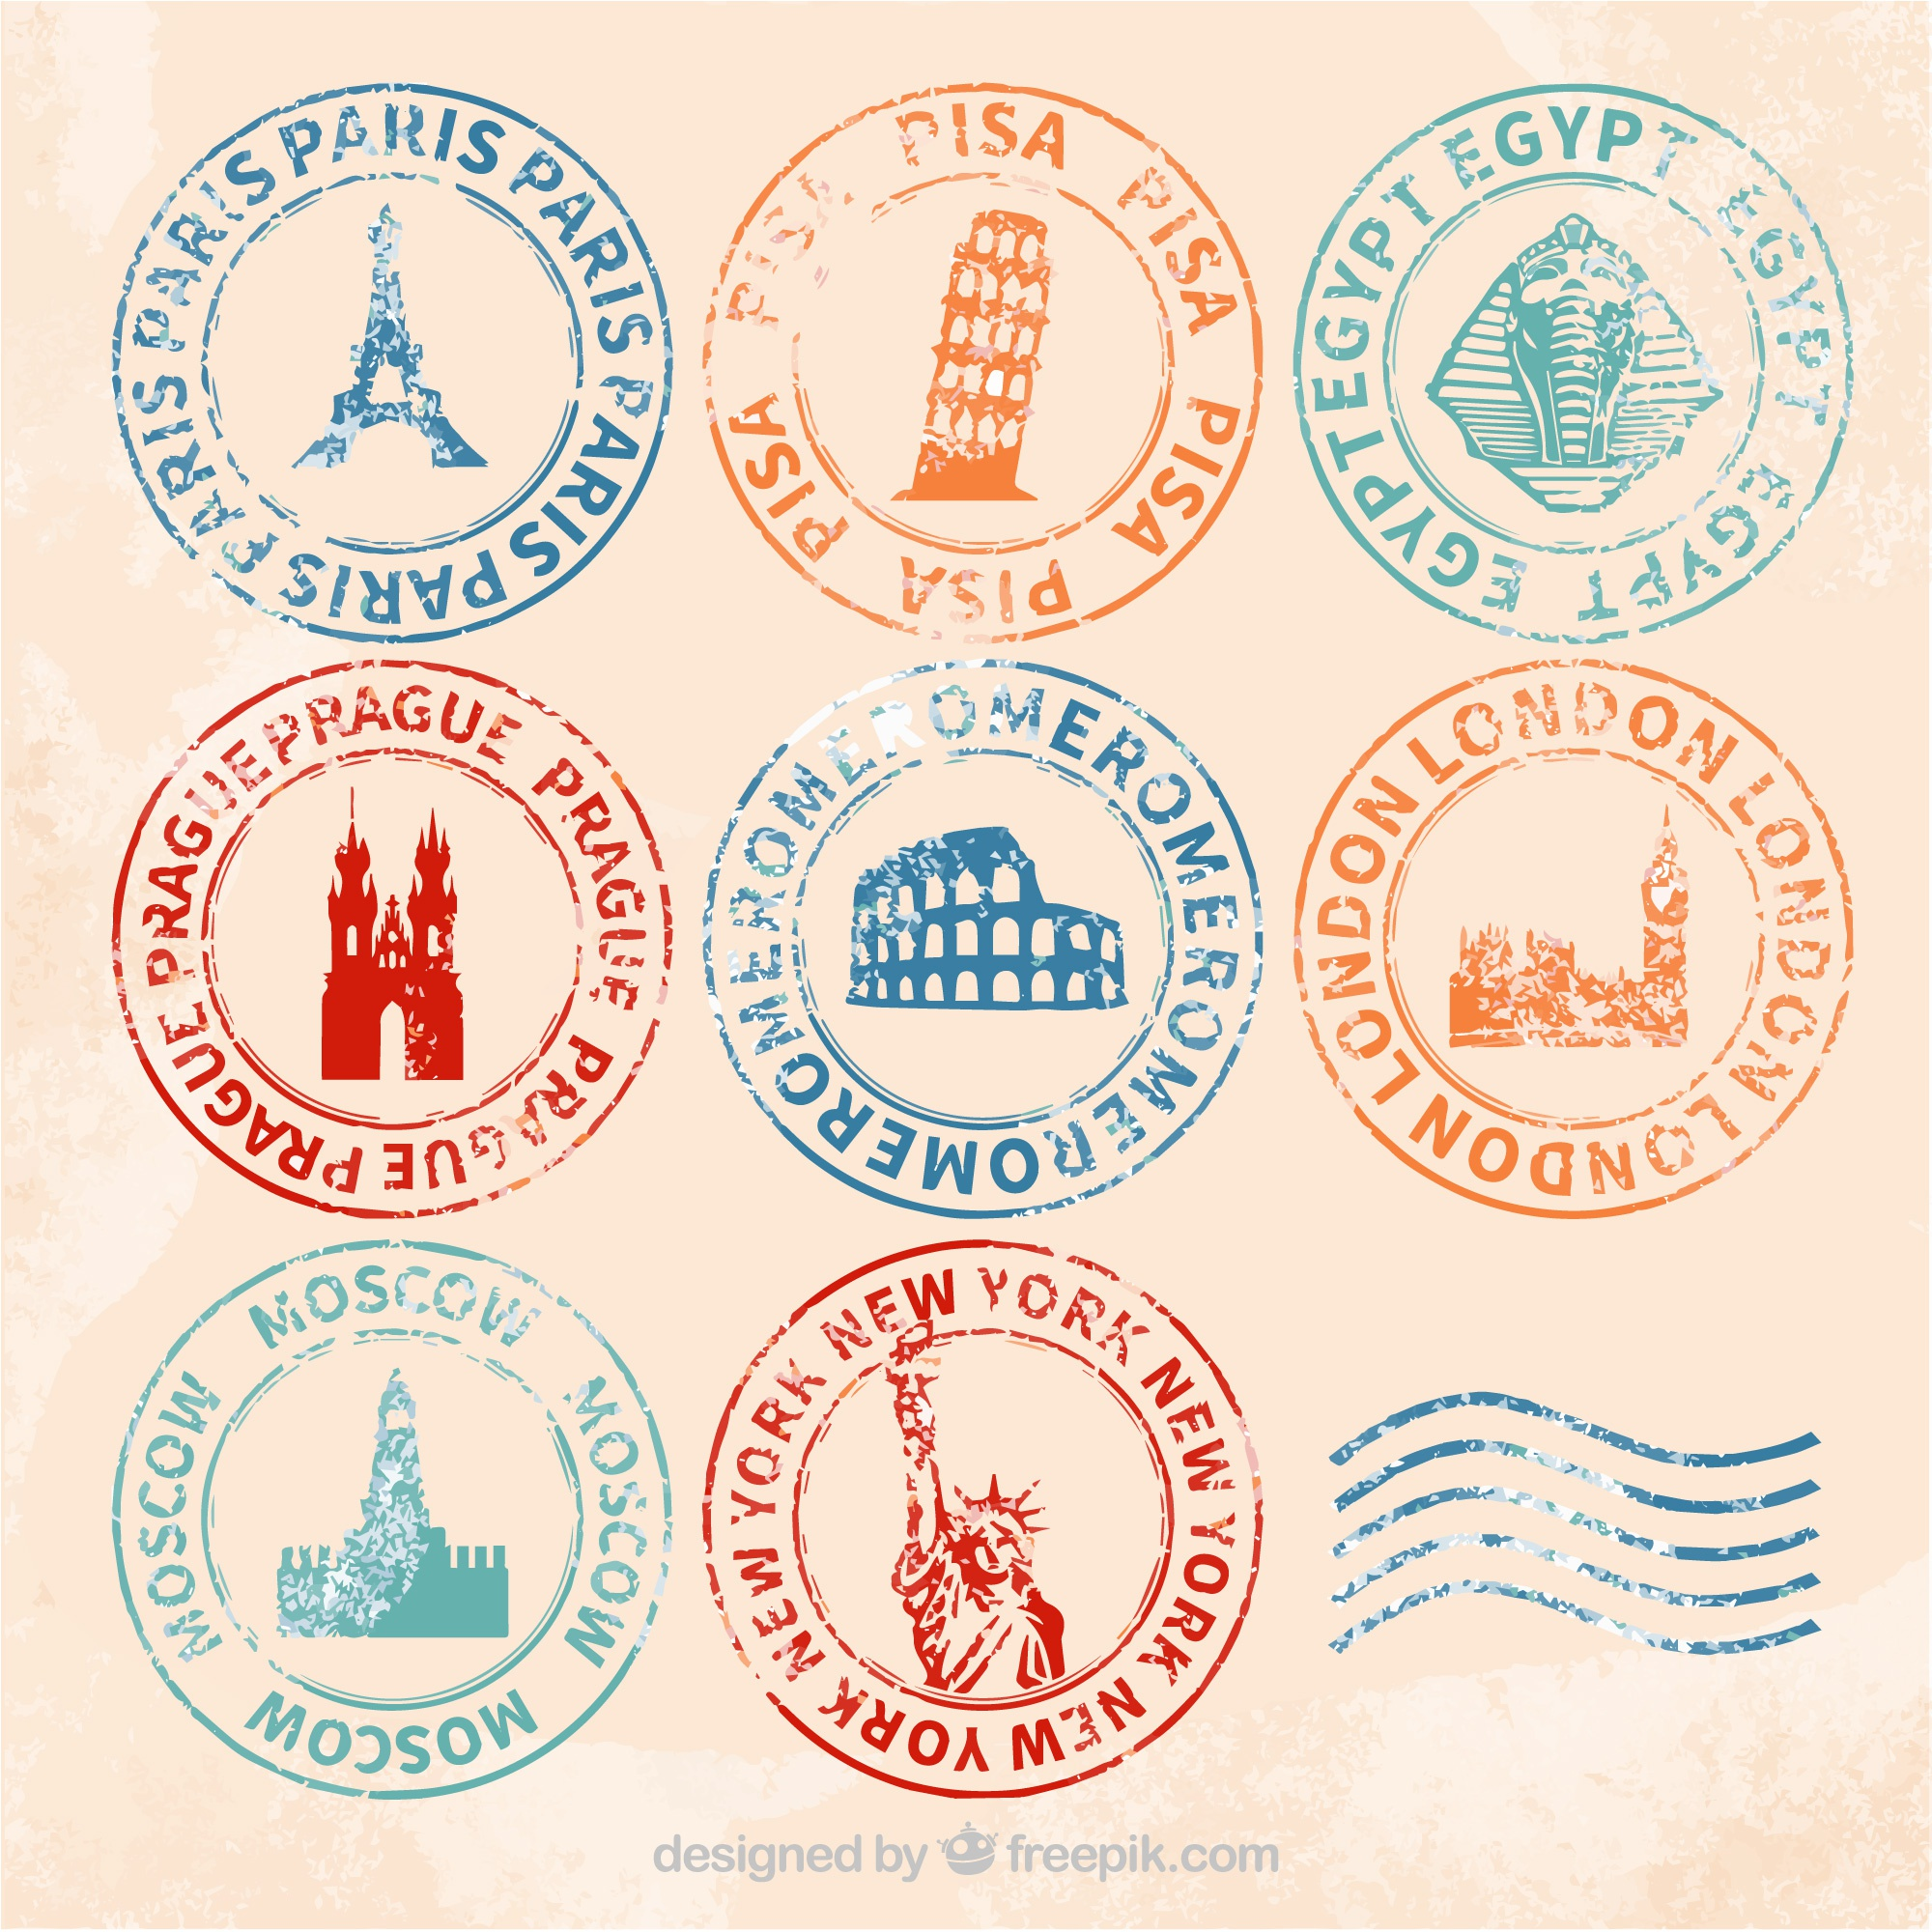 Retro selection of city stamps with different colors